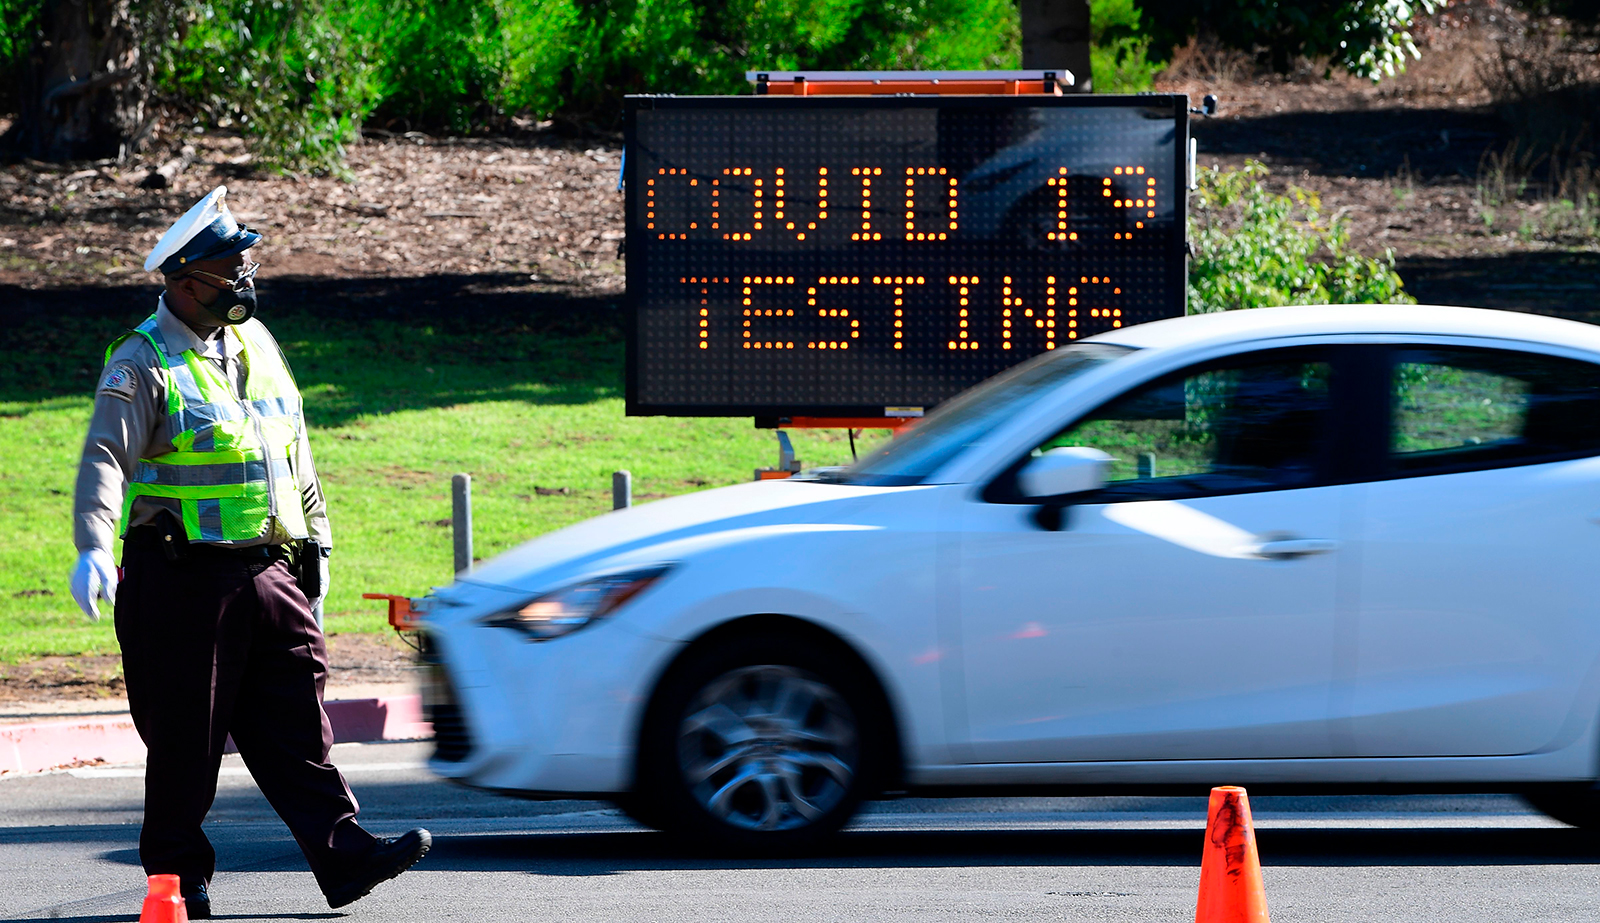 A traffic officer directs drivers as people arrive and depart from the Covid-19 testing venue at Dodger Stadium in Los Angeles, on Thursday, November 12.